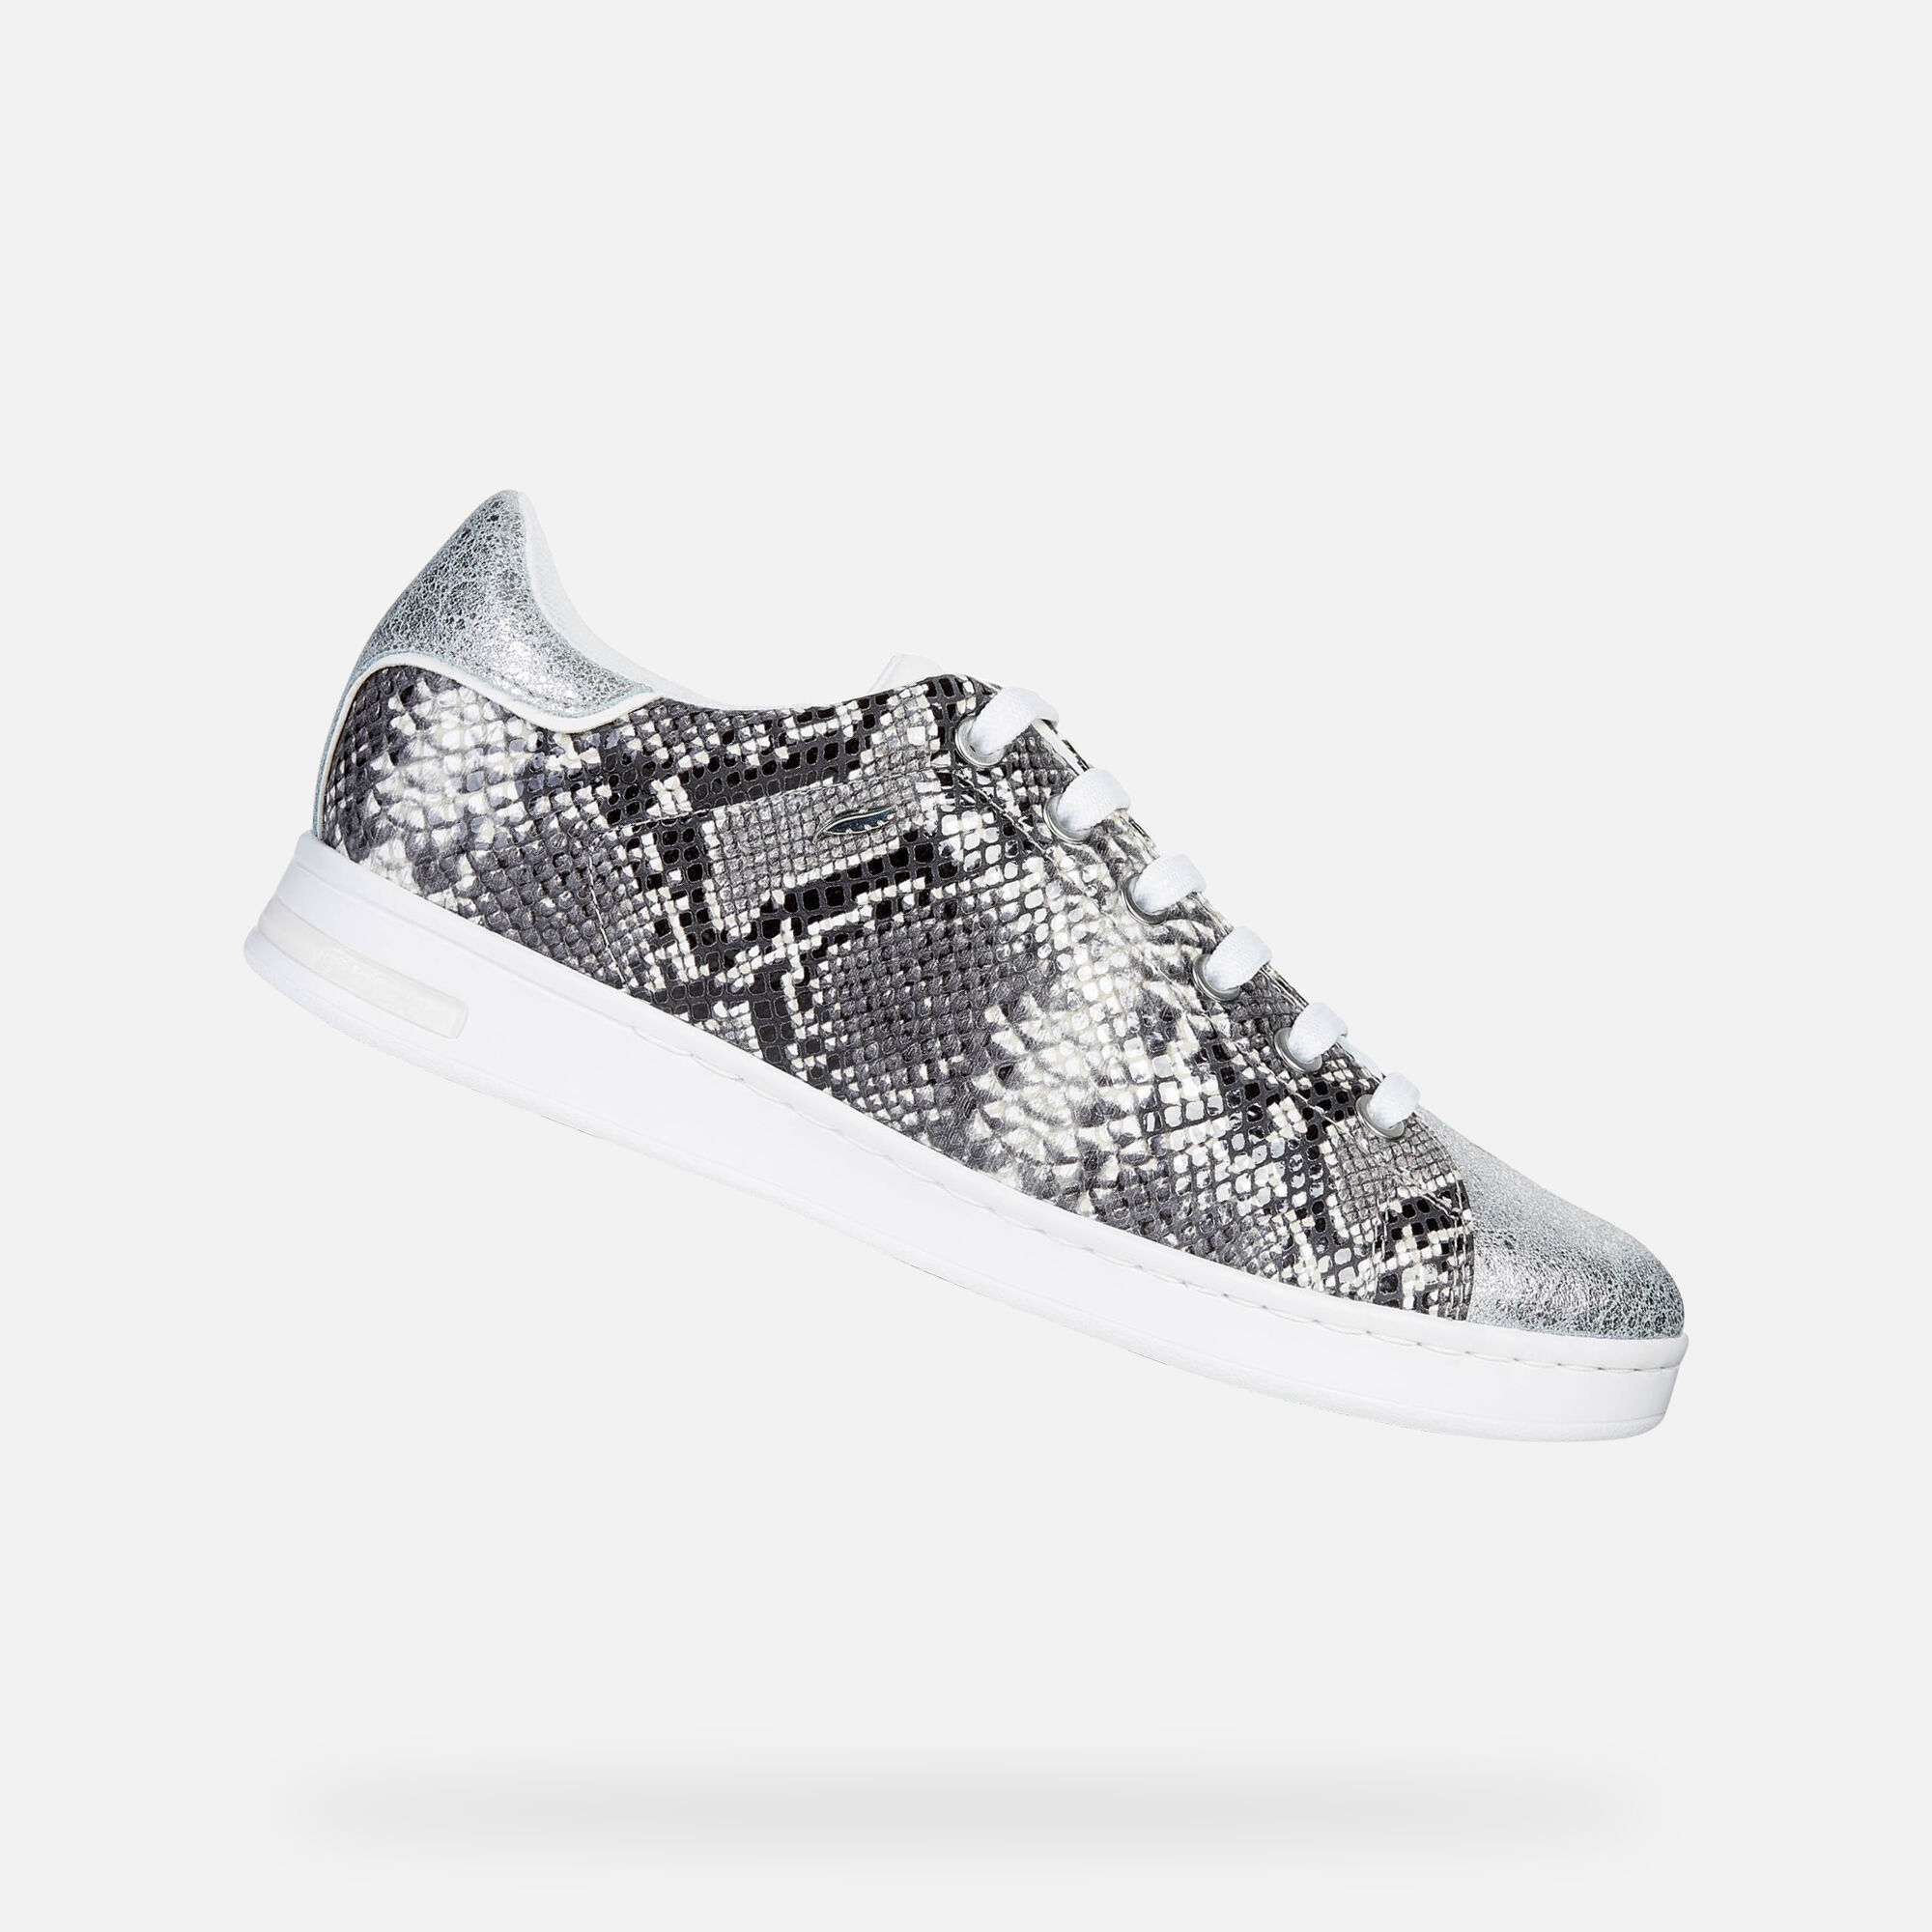 Geox D JAYSEN: Black and White Woman Sneakers | Geox SS19